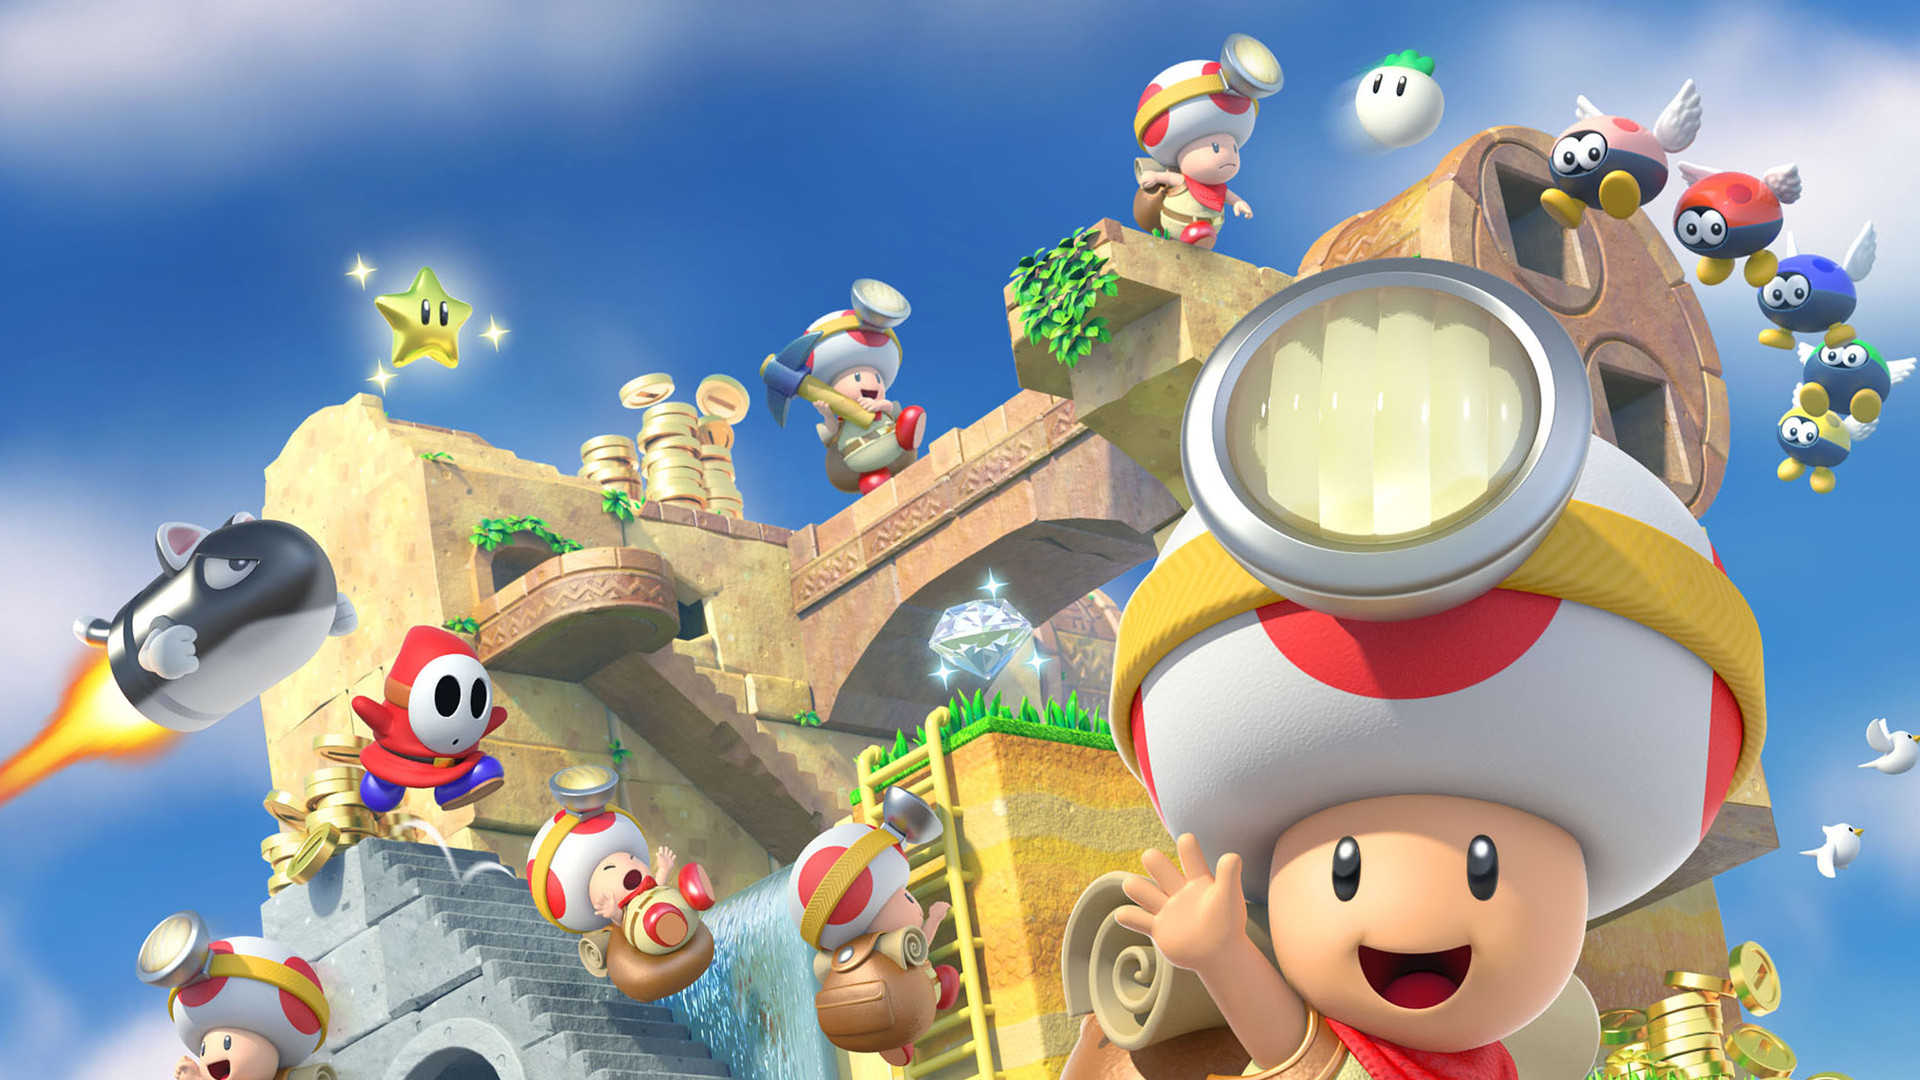 Captain Toad 2